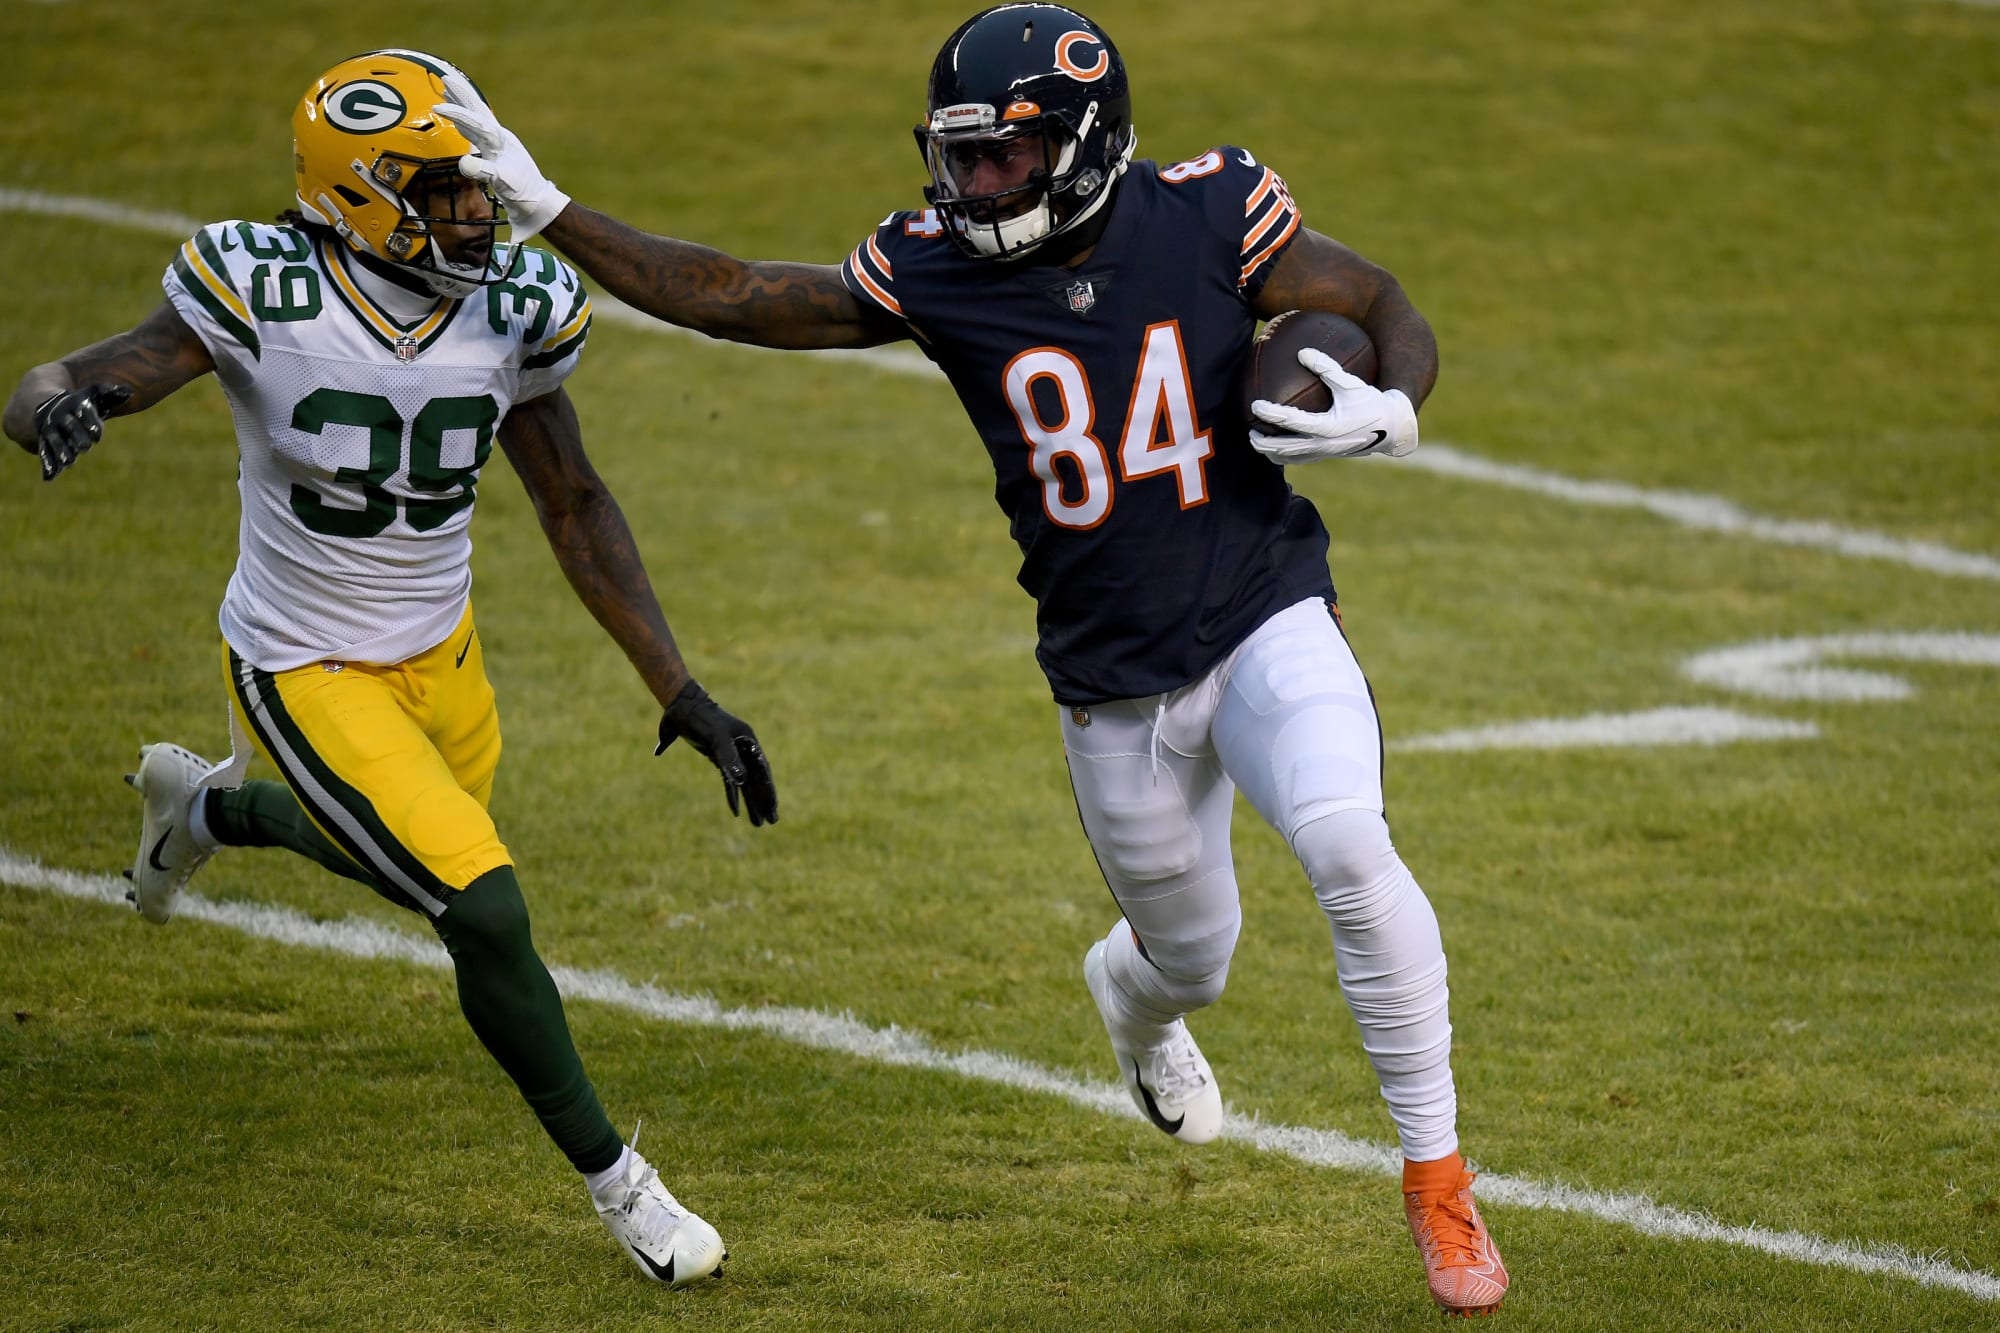 Packers: Cordarrelle Patterson could be a difference-maker